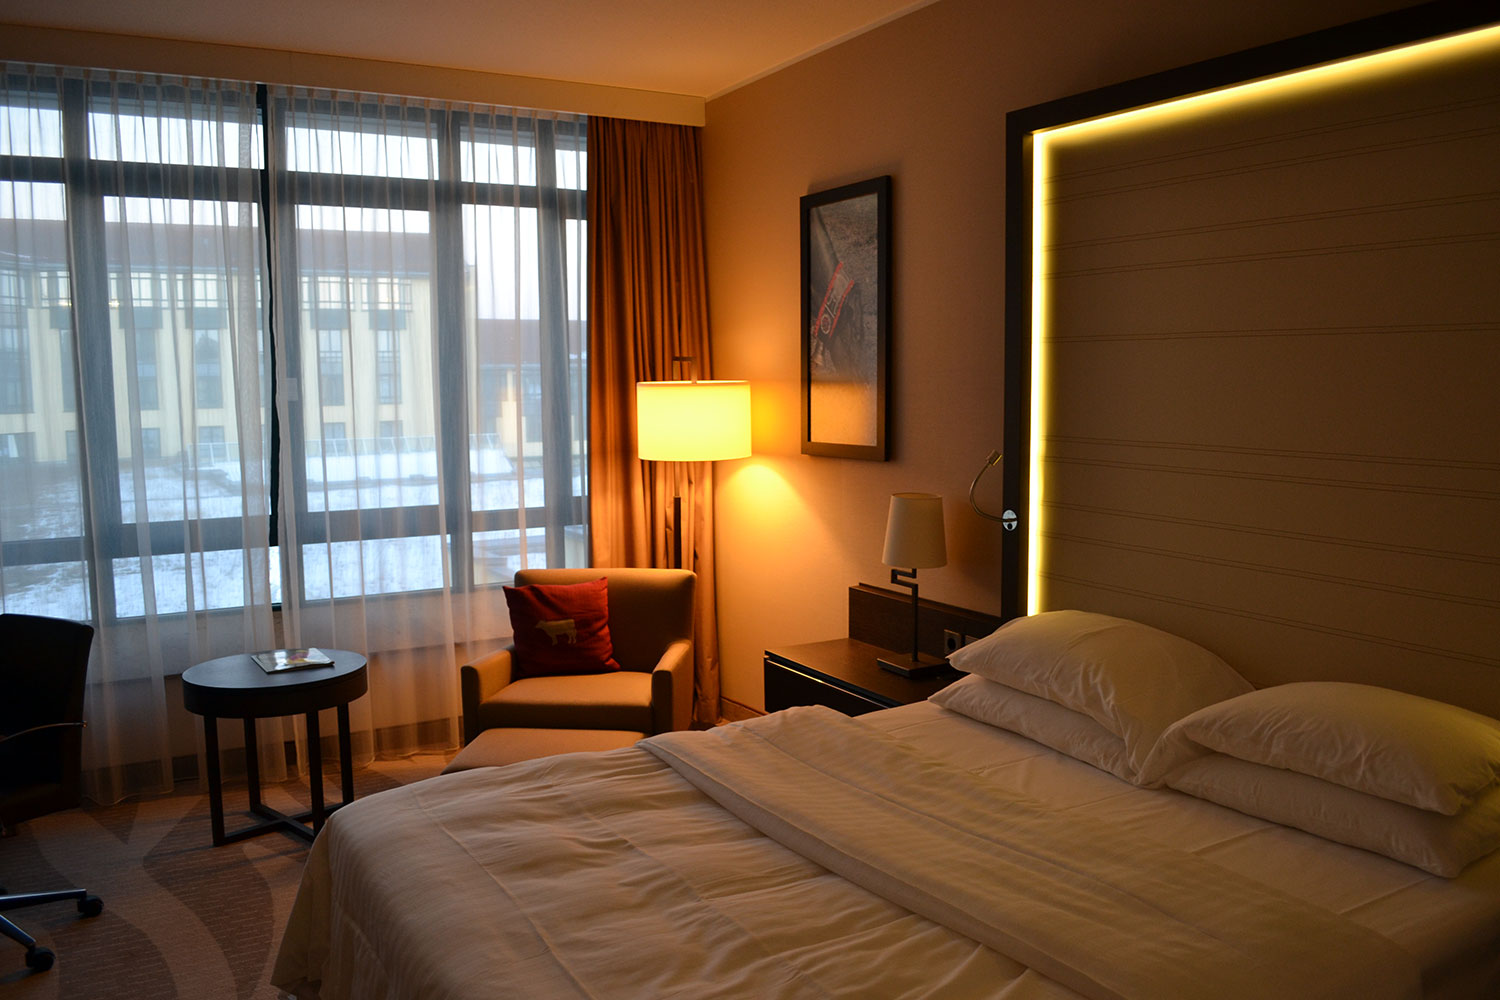 Hotel Review: Munich Airport Marriott Hotel - München Airport Marriott Hotel 1